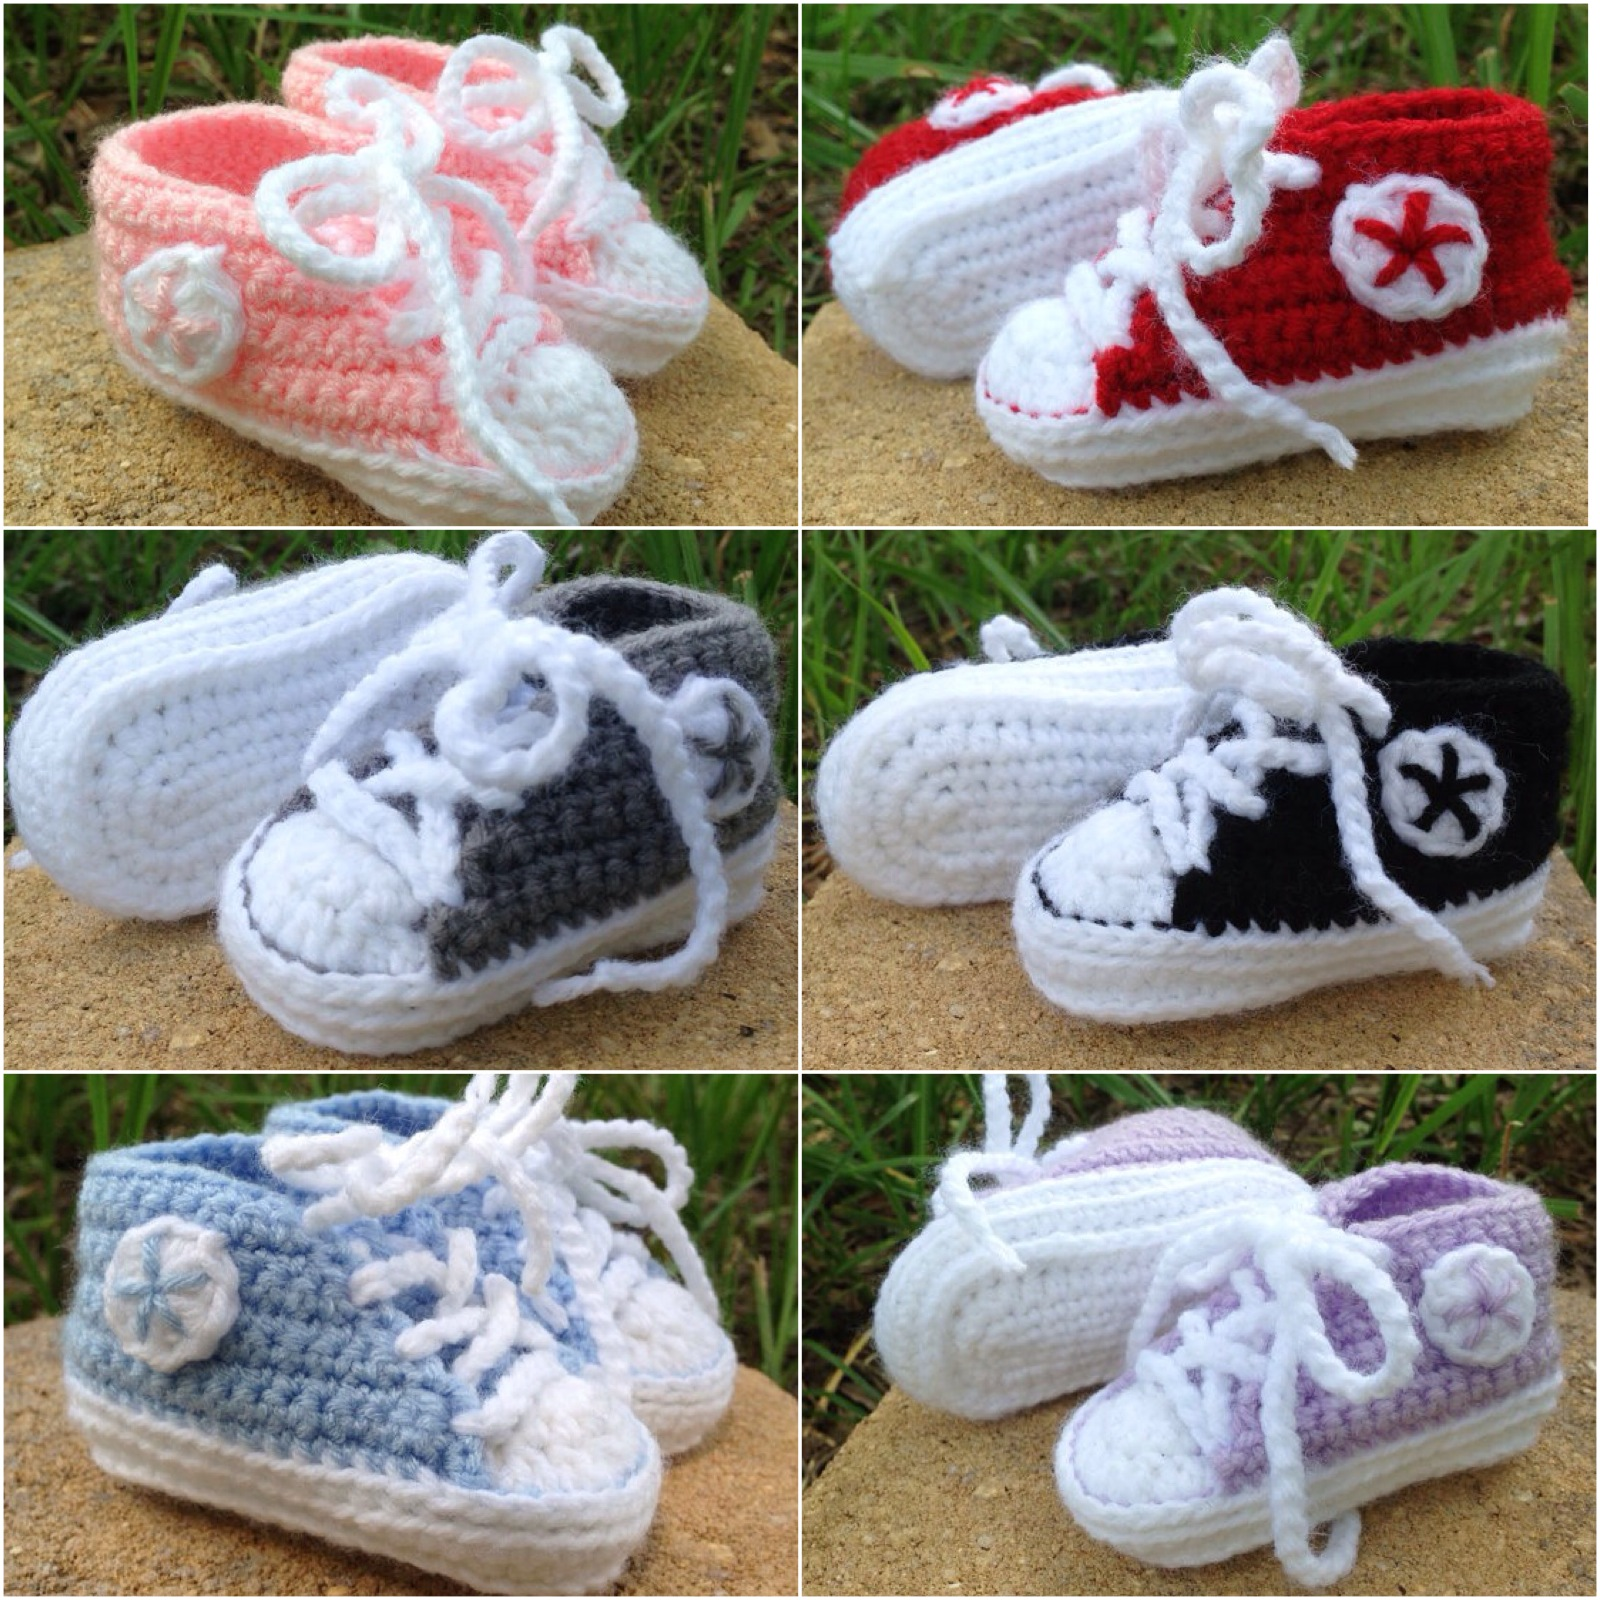 These baby booties are made to look just like the original Chuck Taylor  Converse shoes!